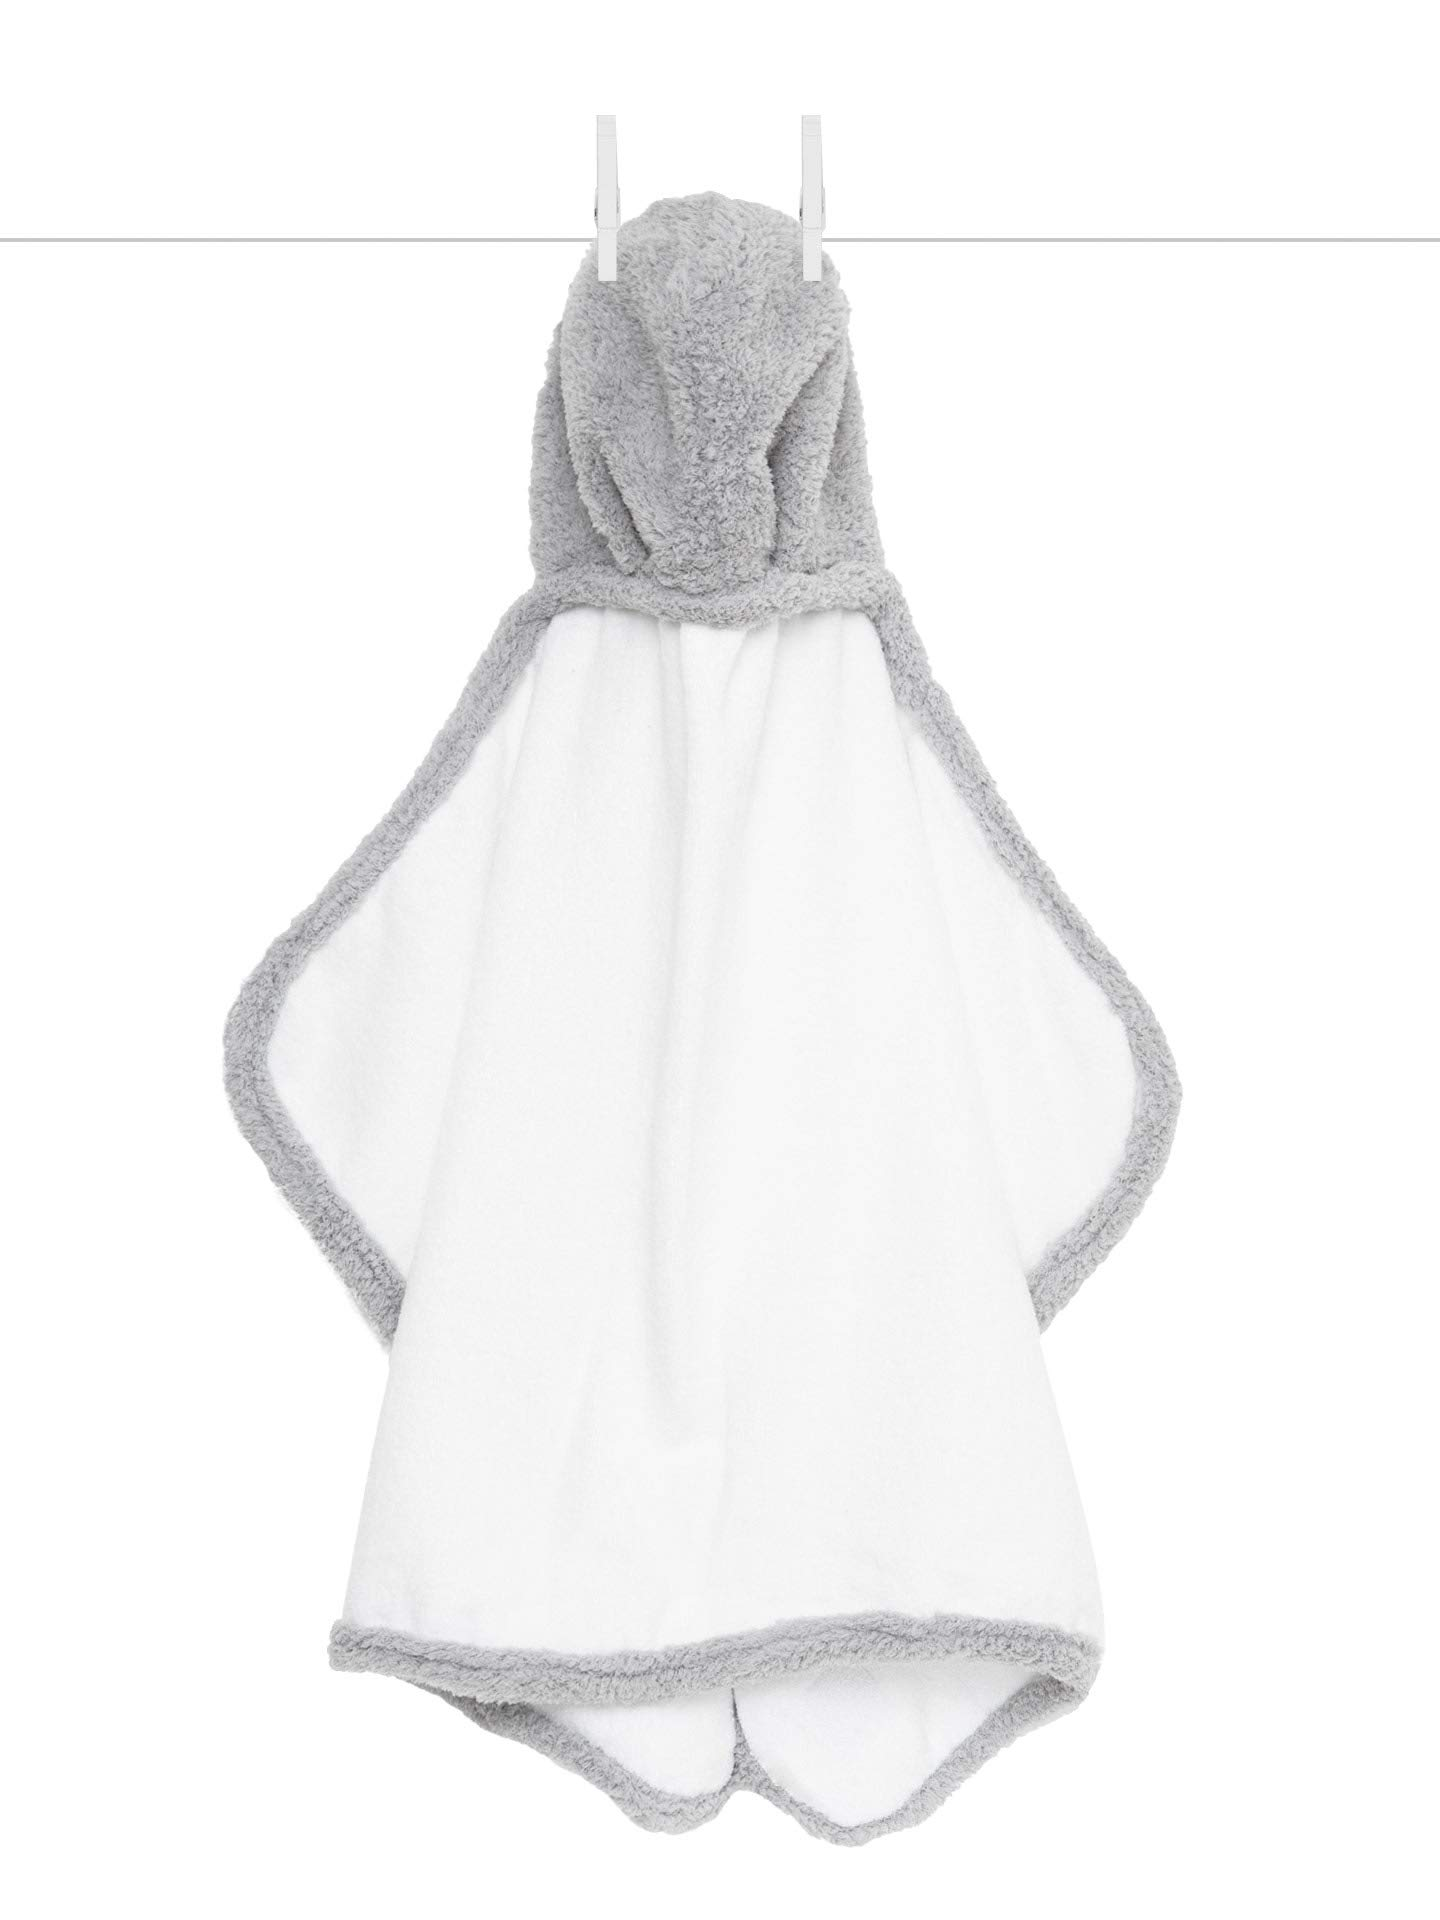 Little Giraffe Chenille Towel, Silver, 23 Inch x 41 Inch by Little Giraffe